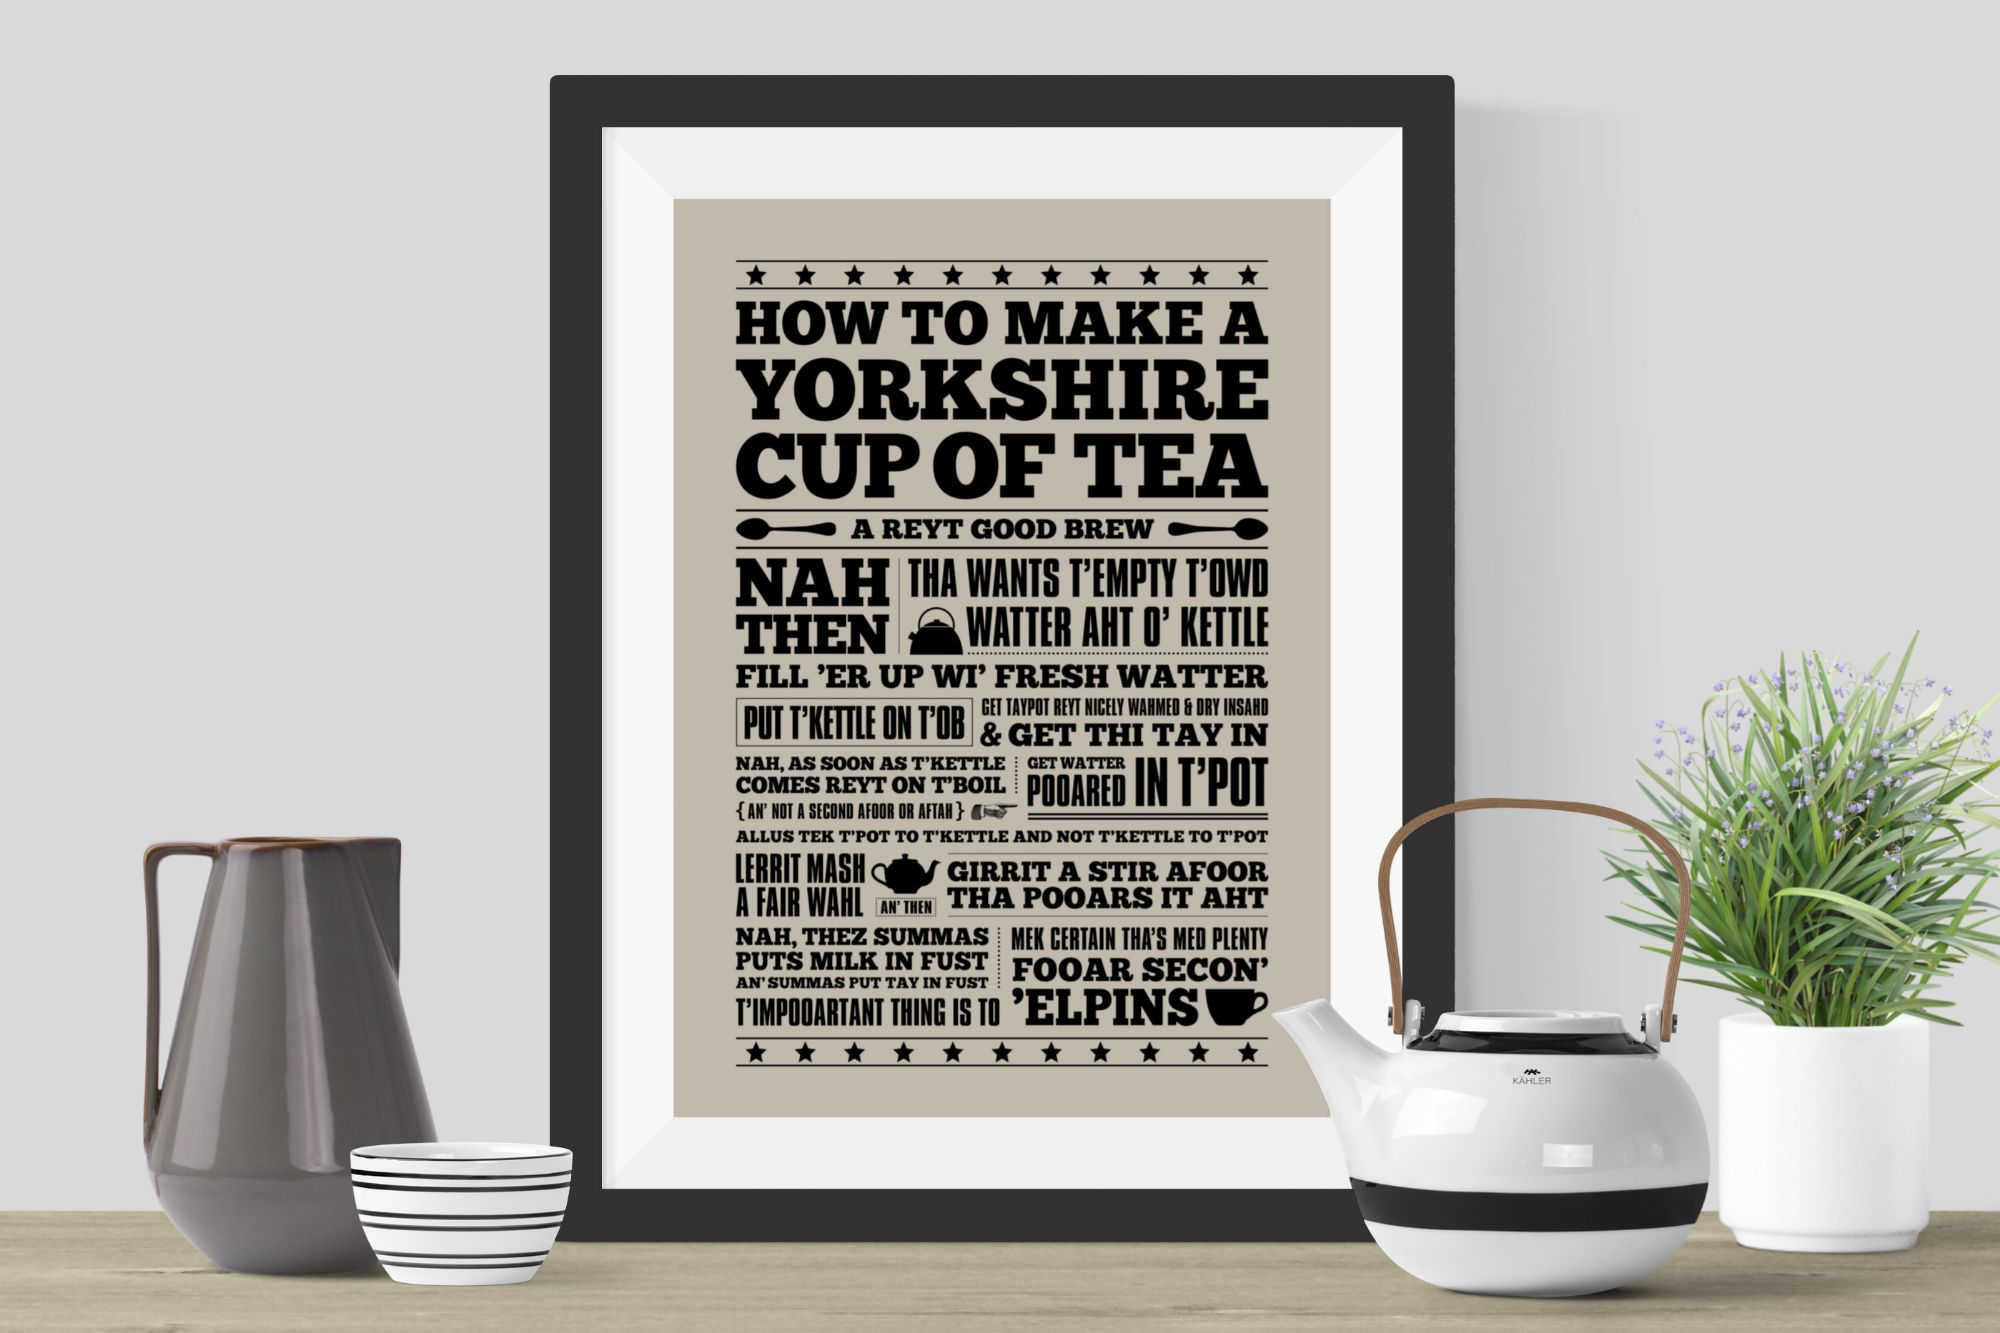 Yorkshire-Cup-of-Tea-3x2-darken